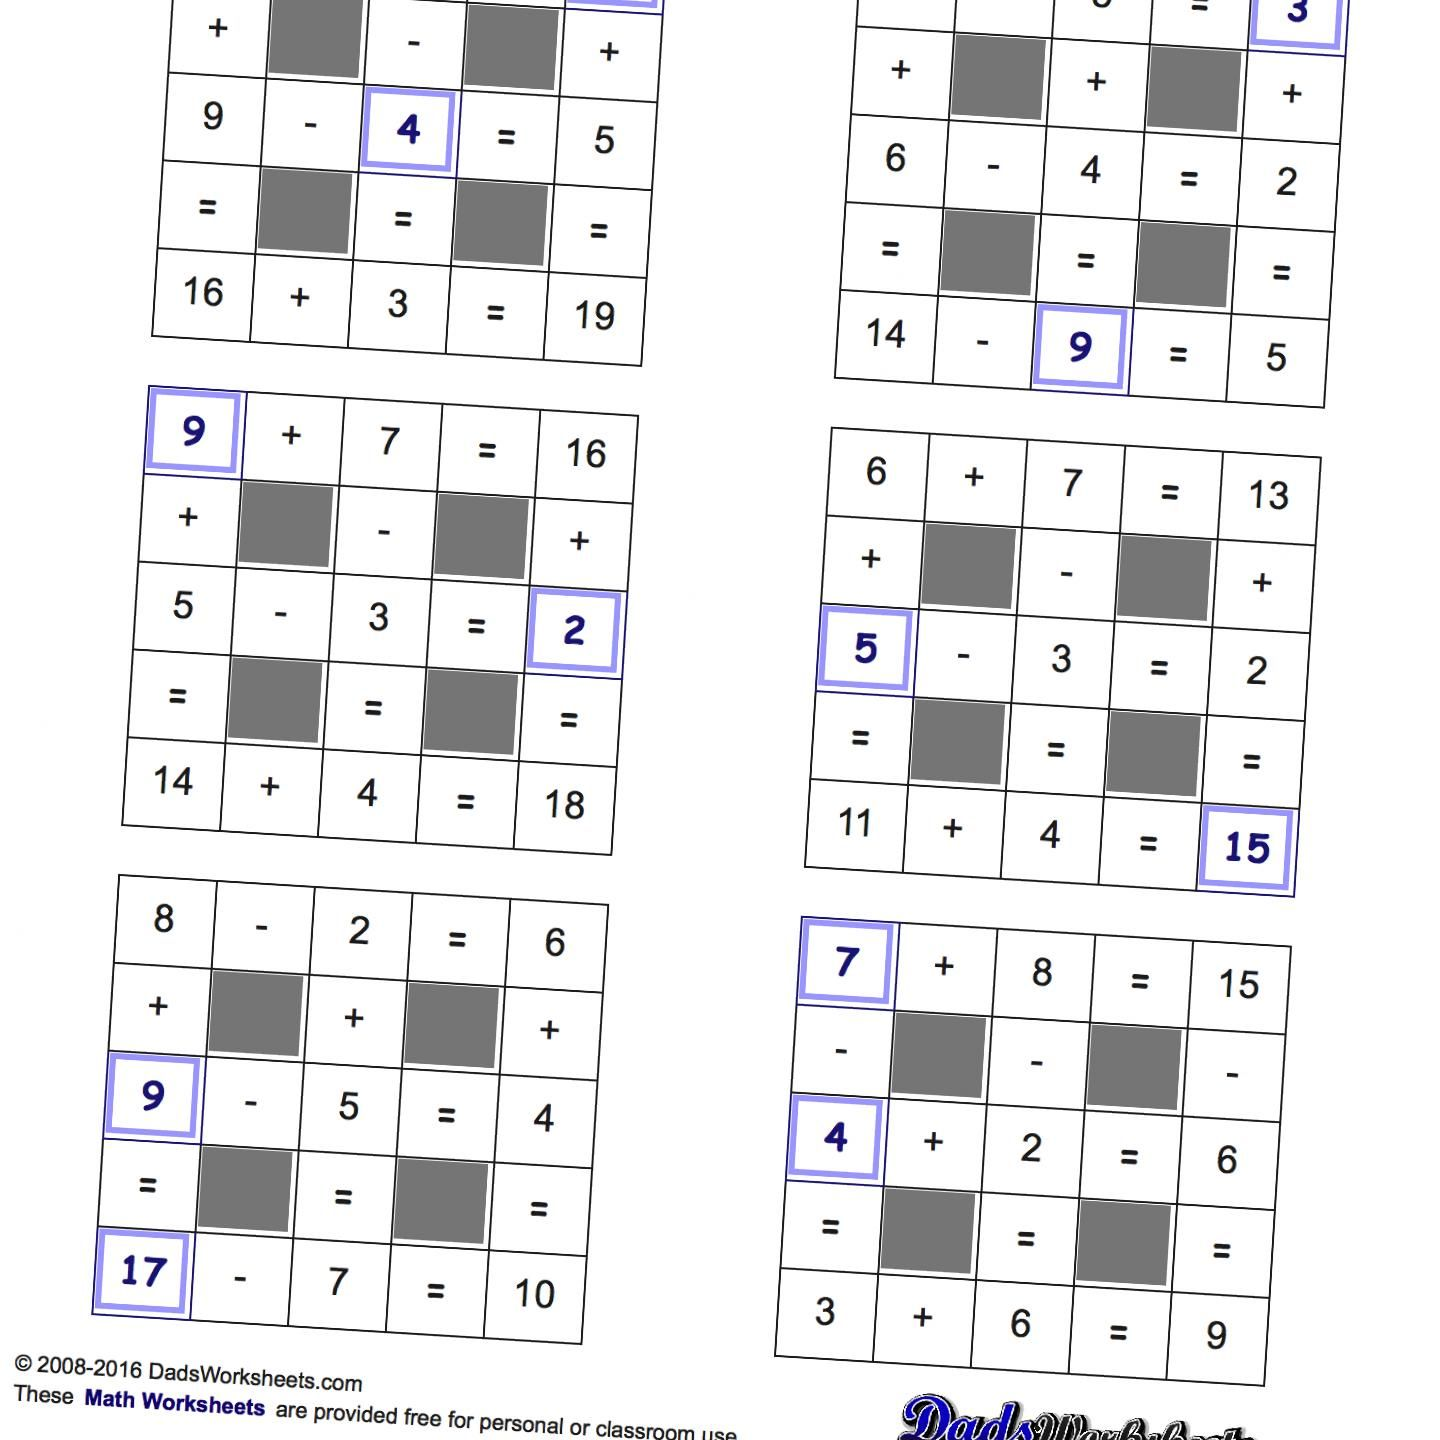 Free math worksheets for Number Patterns problems in various formats ...